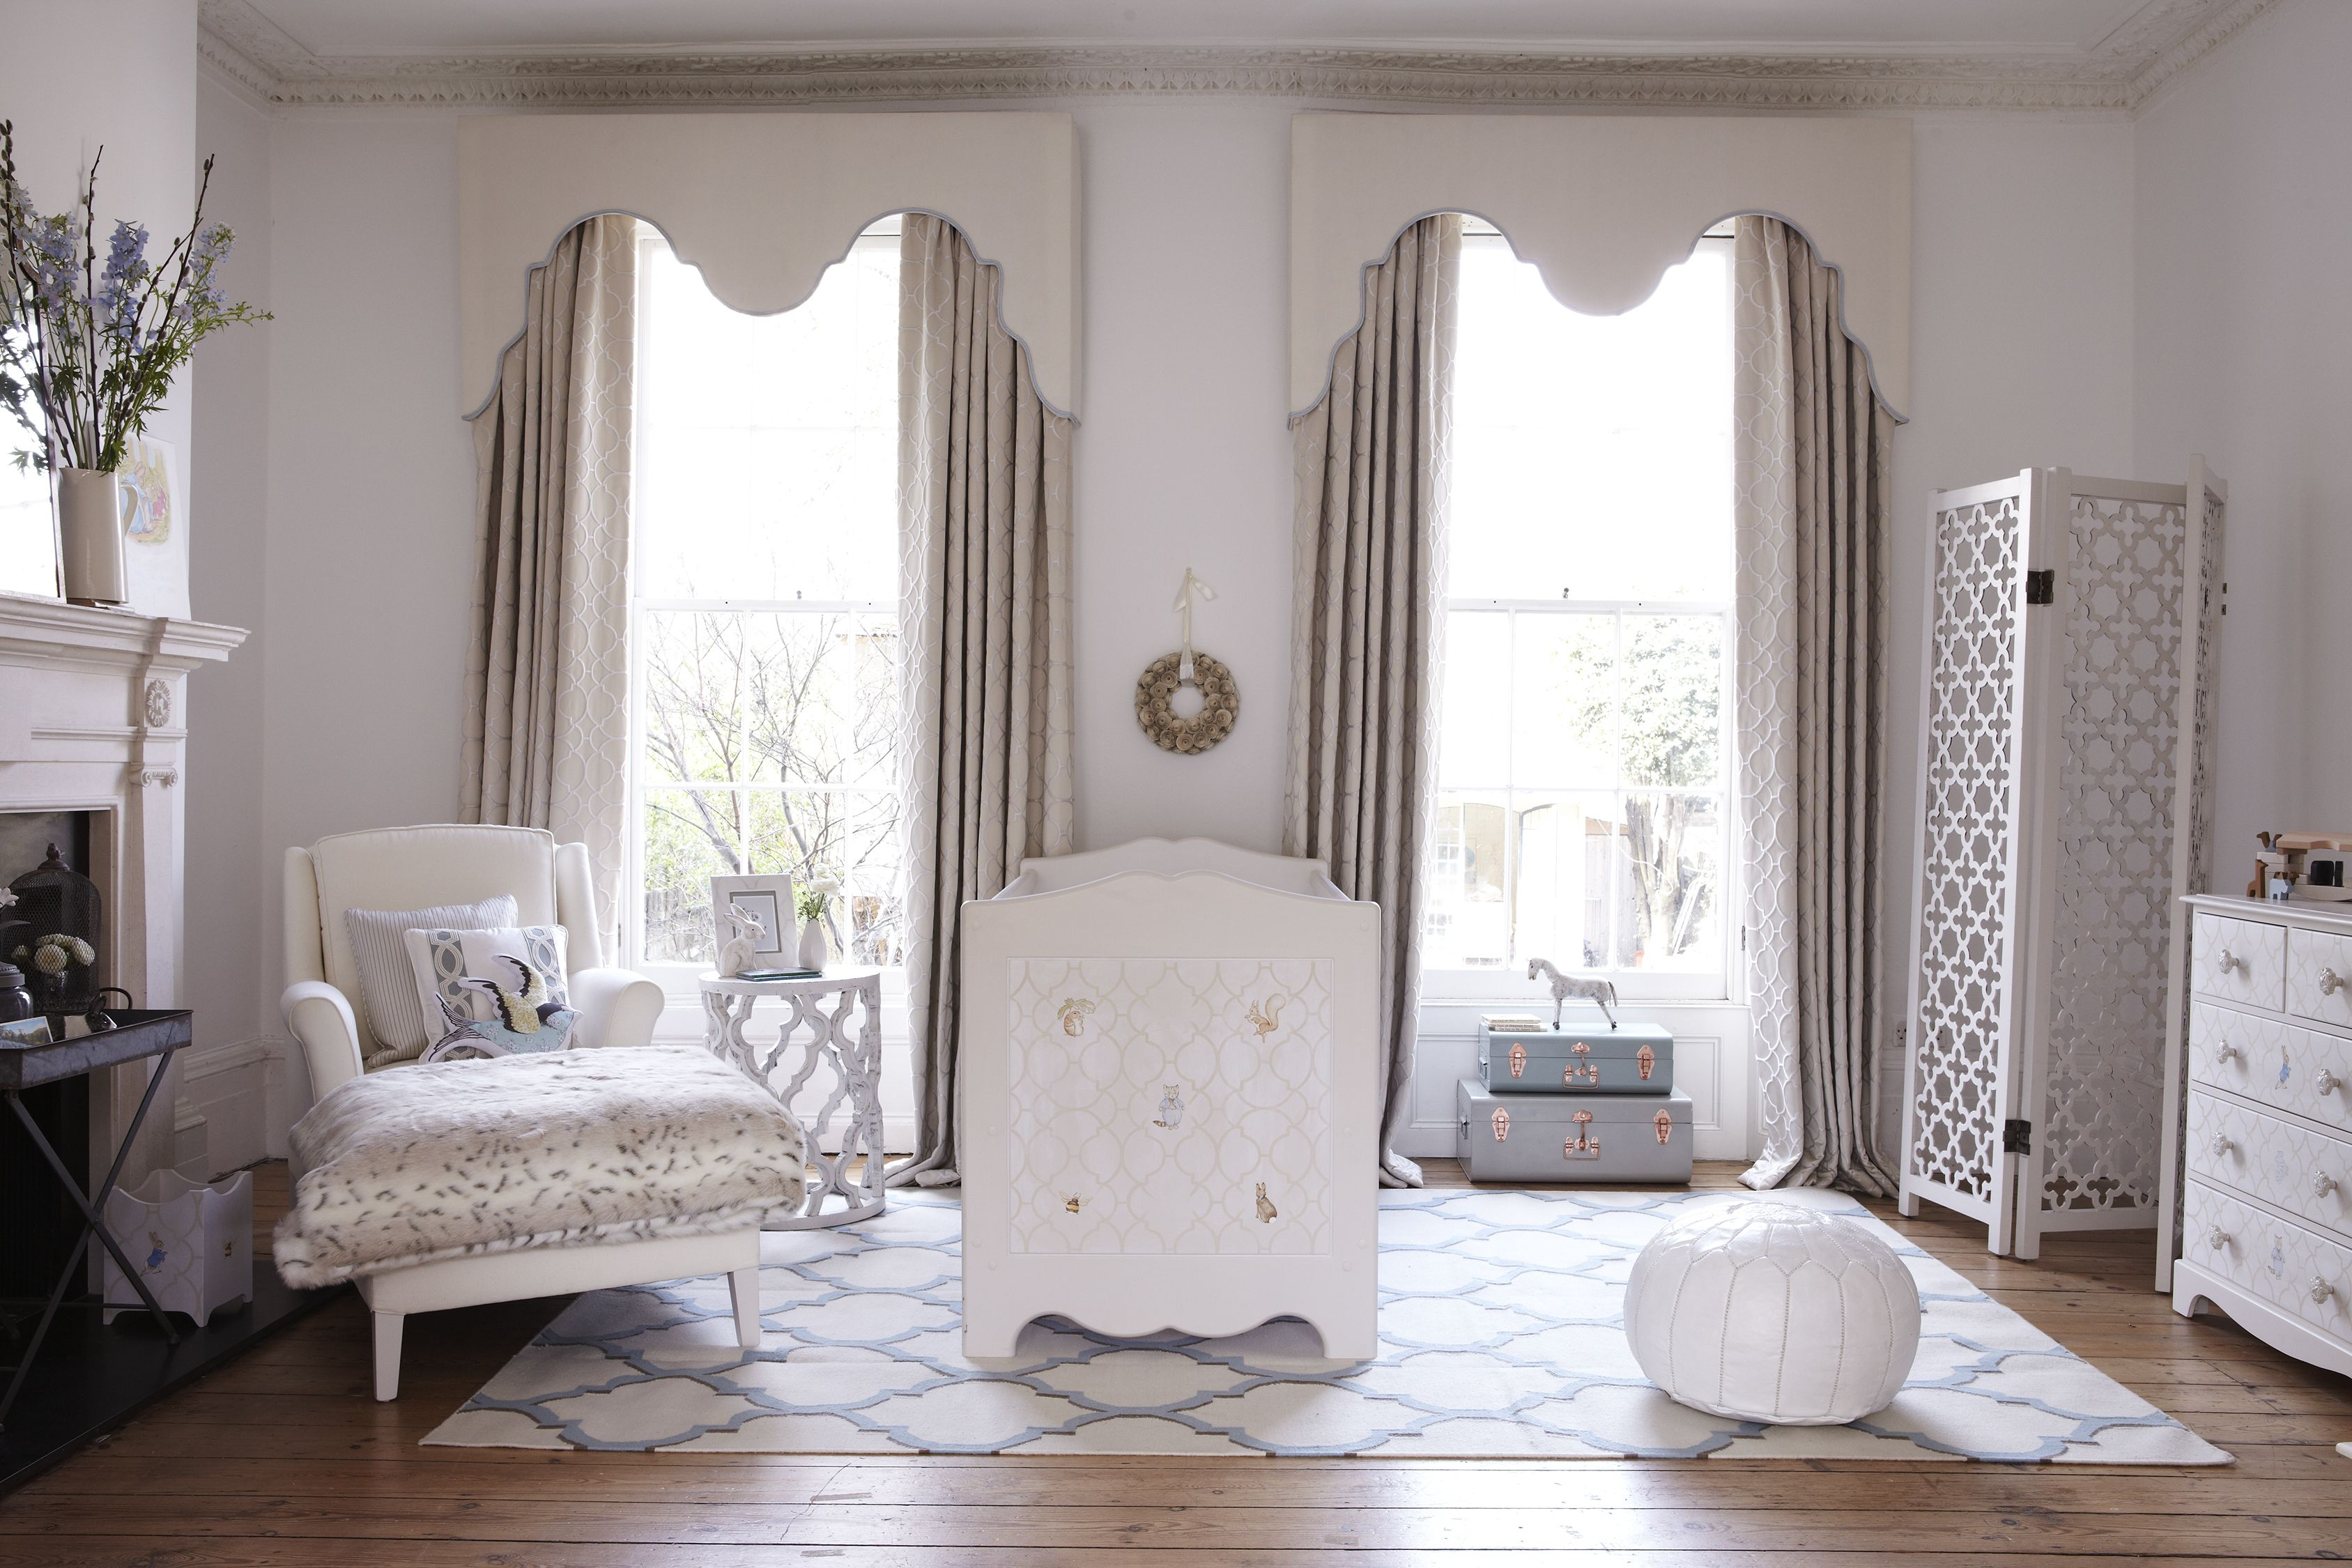 Captivating Dragons Of Walton Street Have Used Our Arabesque Rug In Their Beautiful,  Serene Nursery.